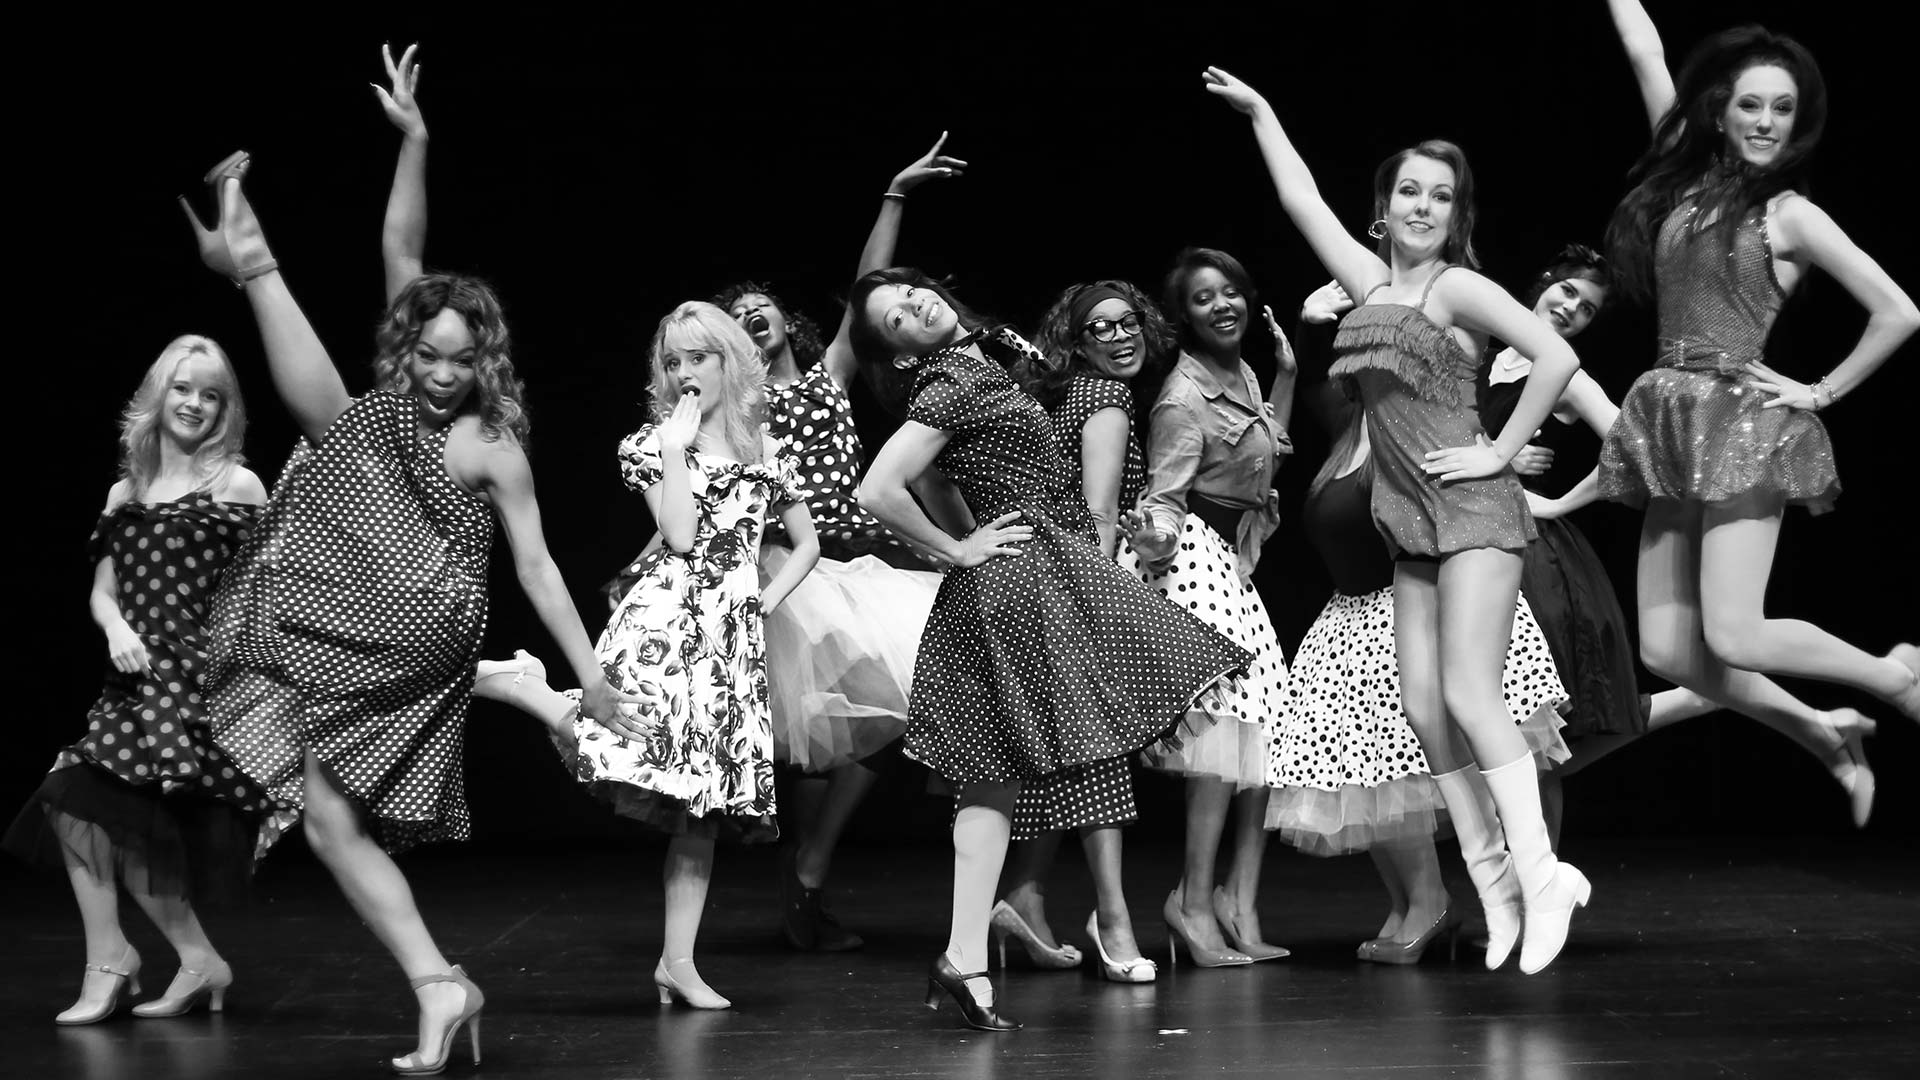 group of female dancers posing dramatically